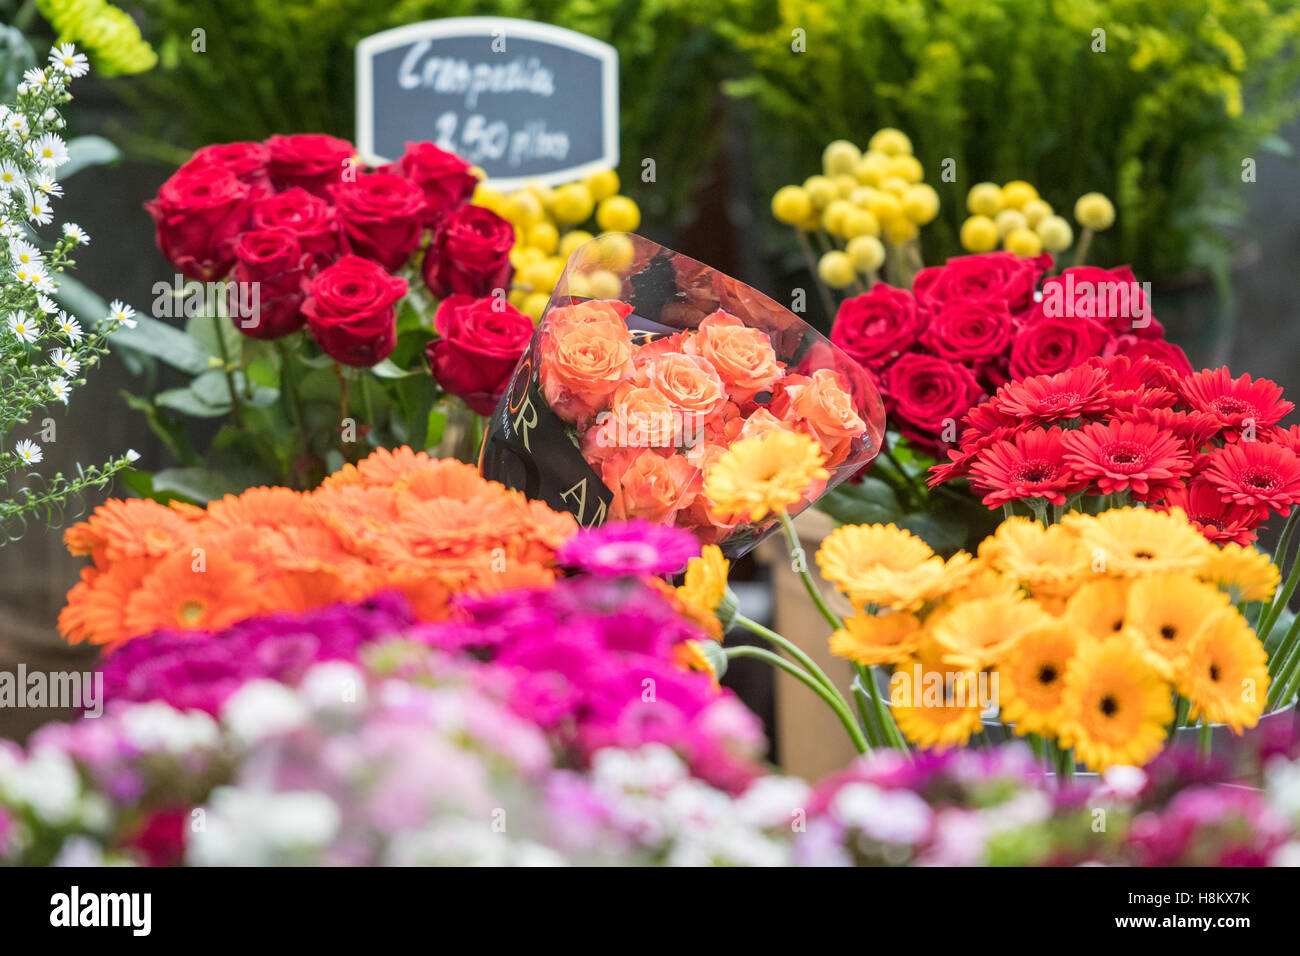 Amsterdam Netherlands Close Up Of Bouquets Of Roses And Other Types